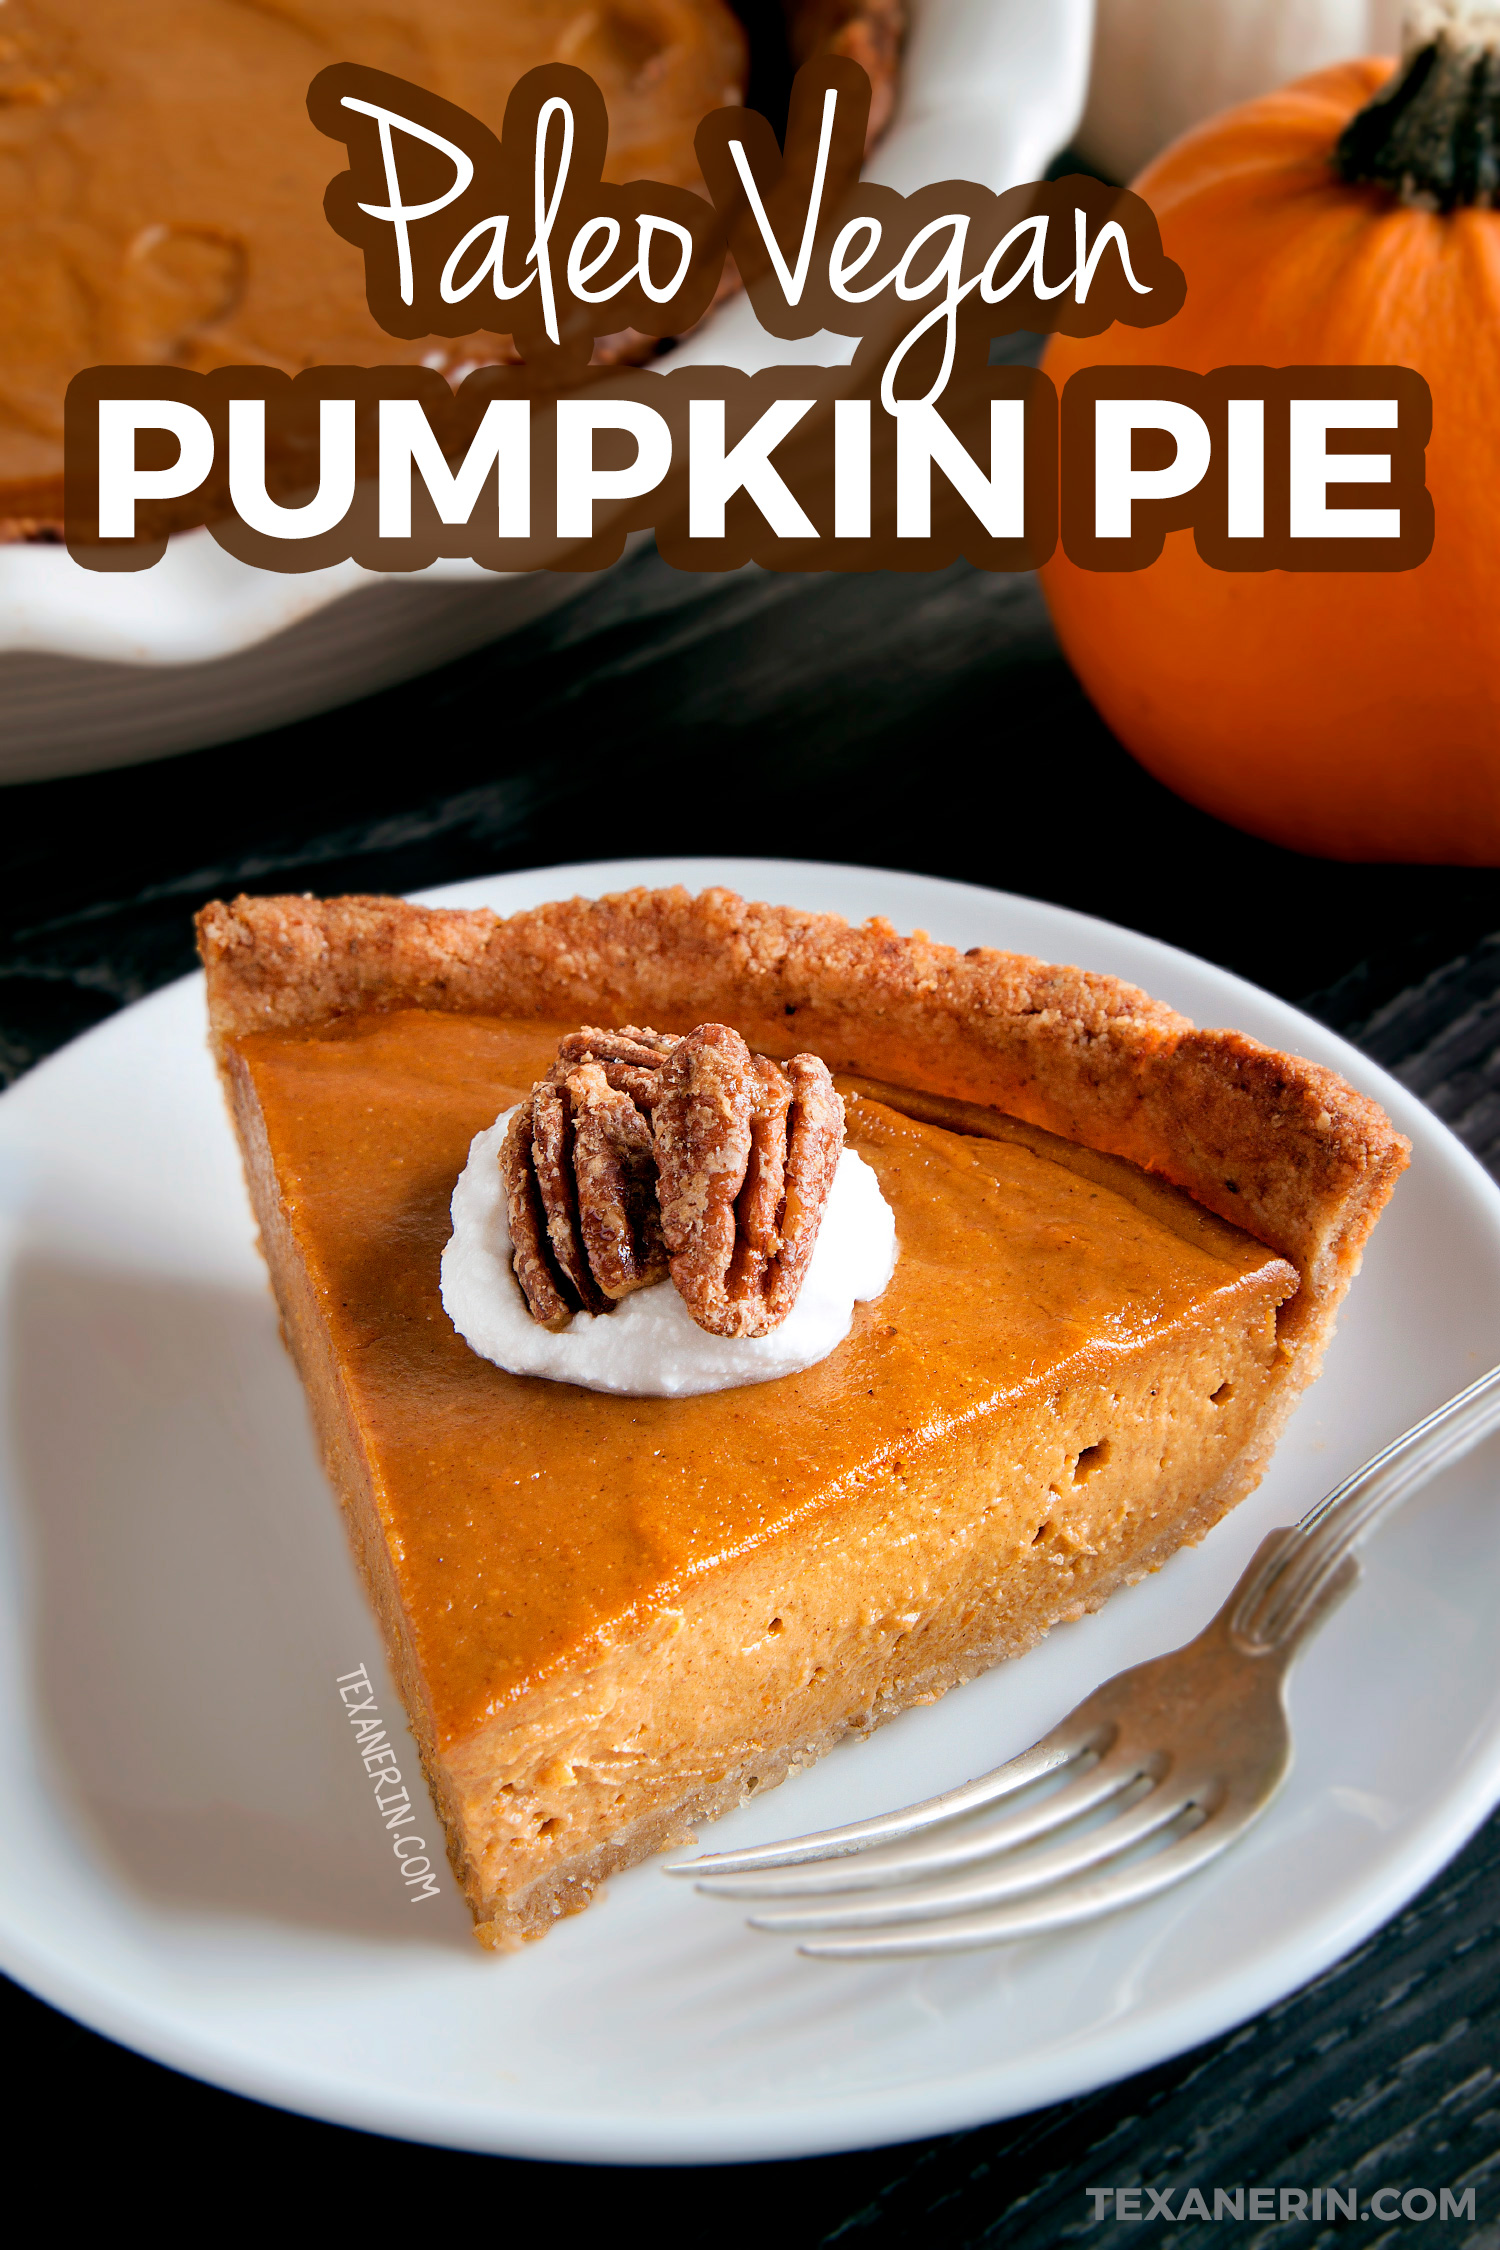 This Paleo Vegan Pumpkin Pie has a richer and creamier pumpkin filling than your traditional pumpkin pie! A great grain-free, dairy-free and gluten-free dessert for Thanksgiving. With a how-to recipe video.